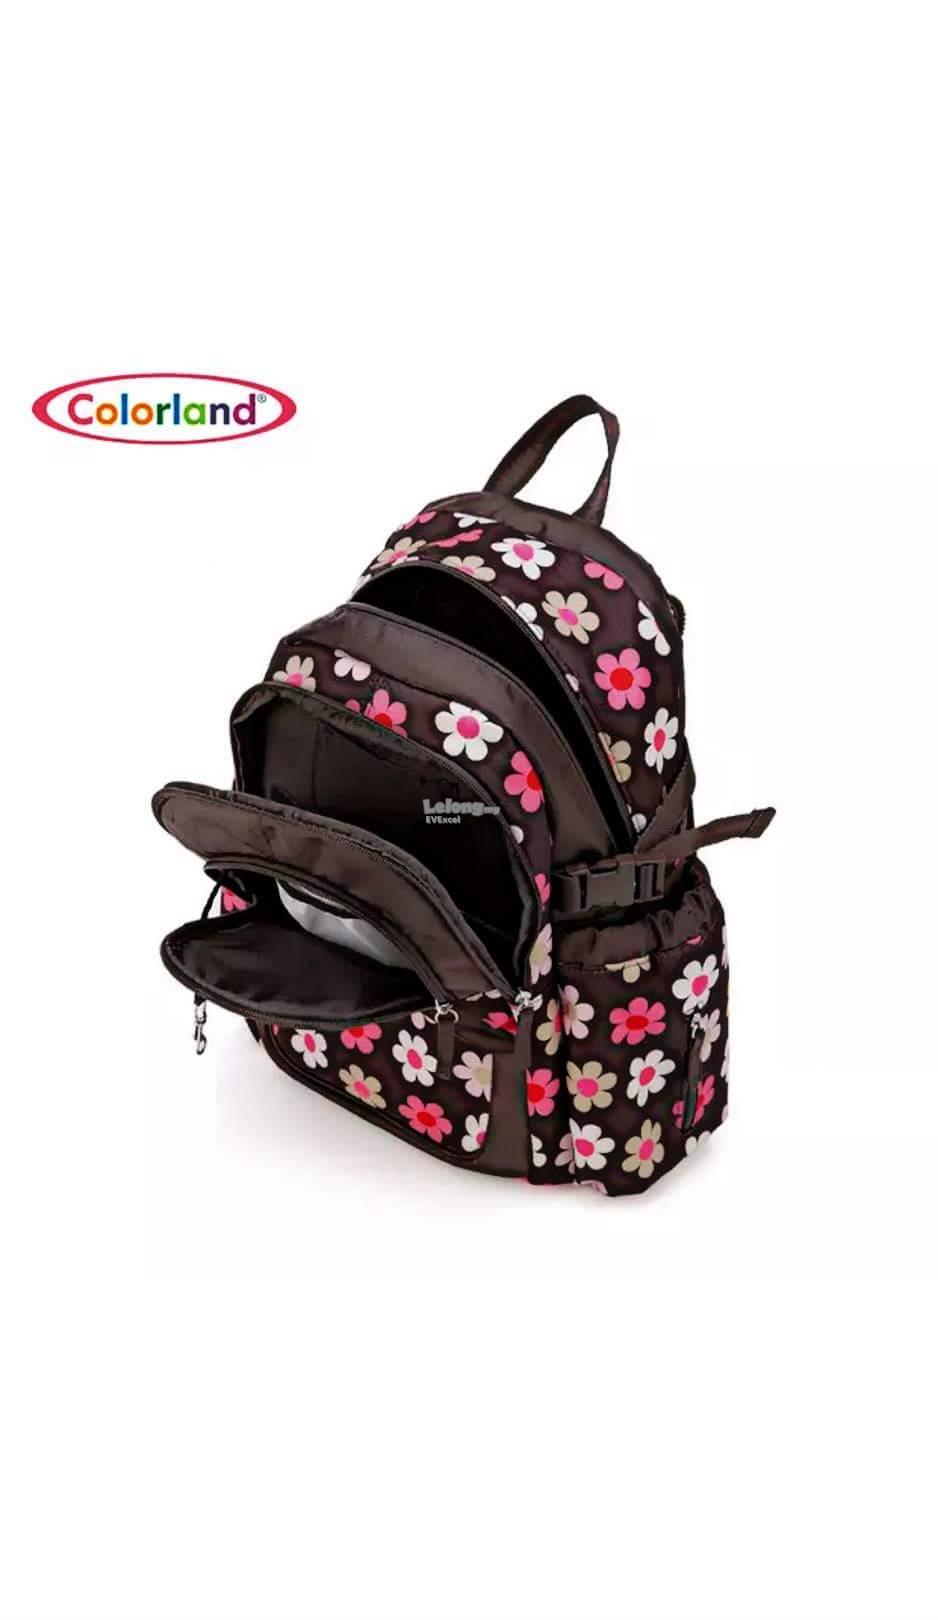 Colorland Abbey Ergo Baby Changing Backpack - Type C